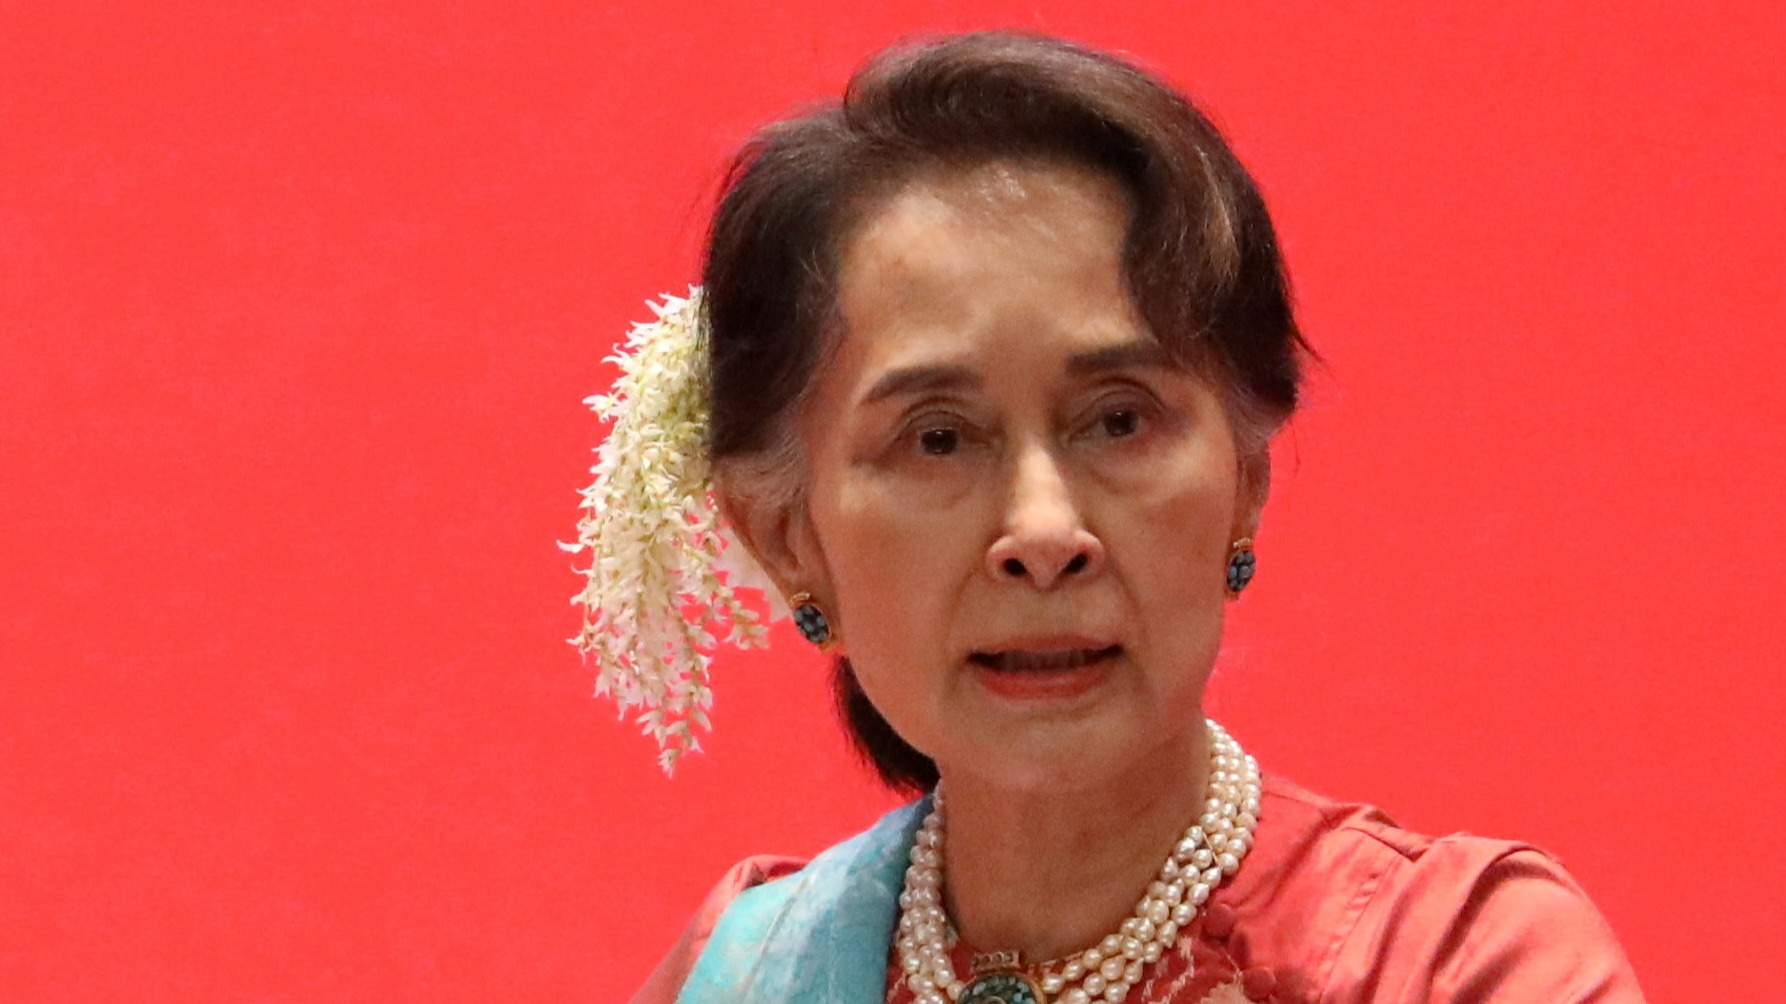 Myanmar coup latest: Week from March 30 to April 17, Opponents of junta unveil Suu Kyi-led unity cabinet